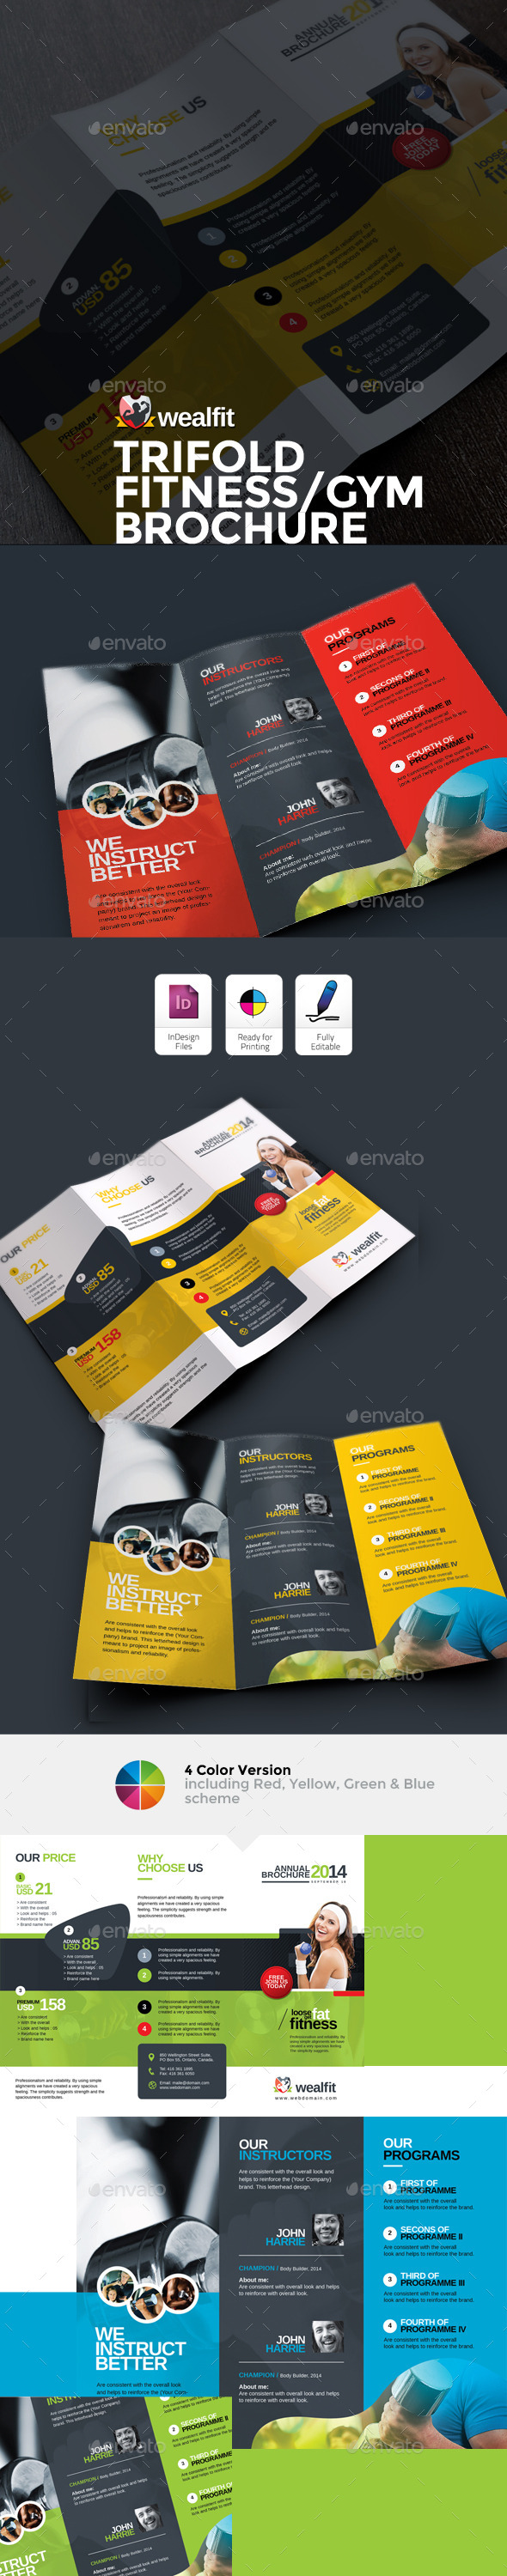 WealFit | Fitness - Gym Trifold Brochure